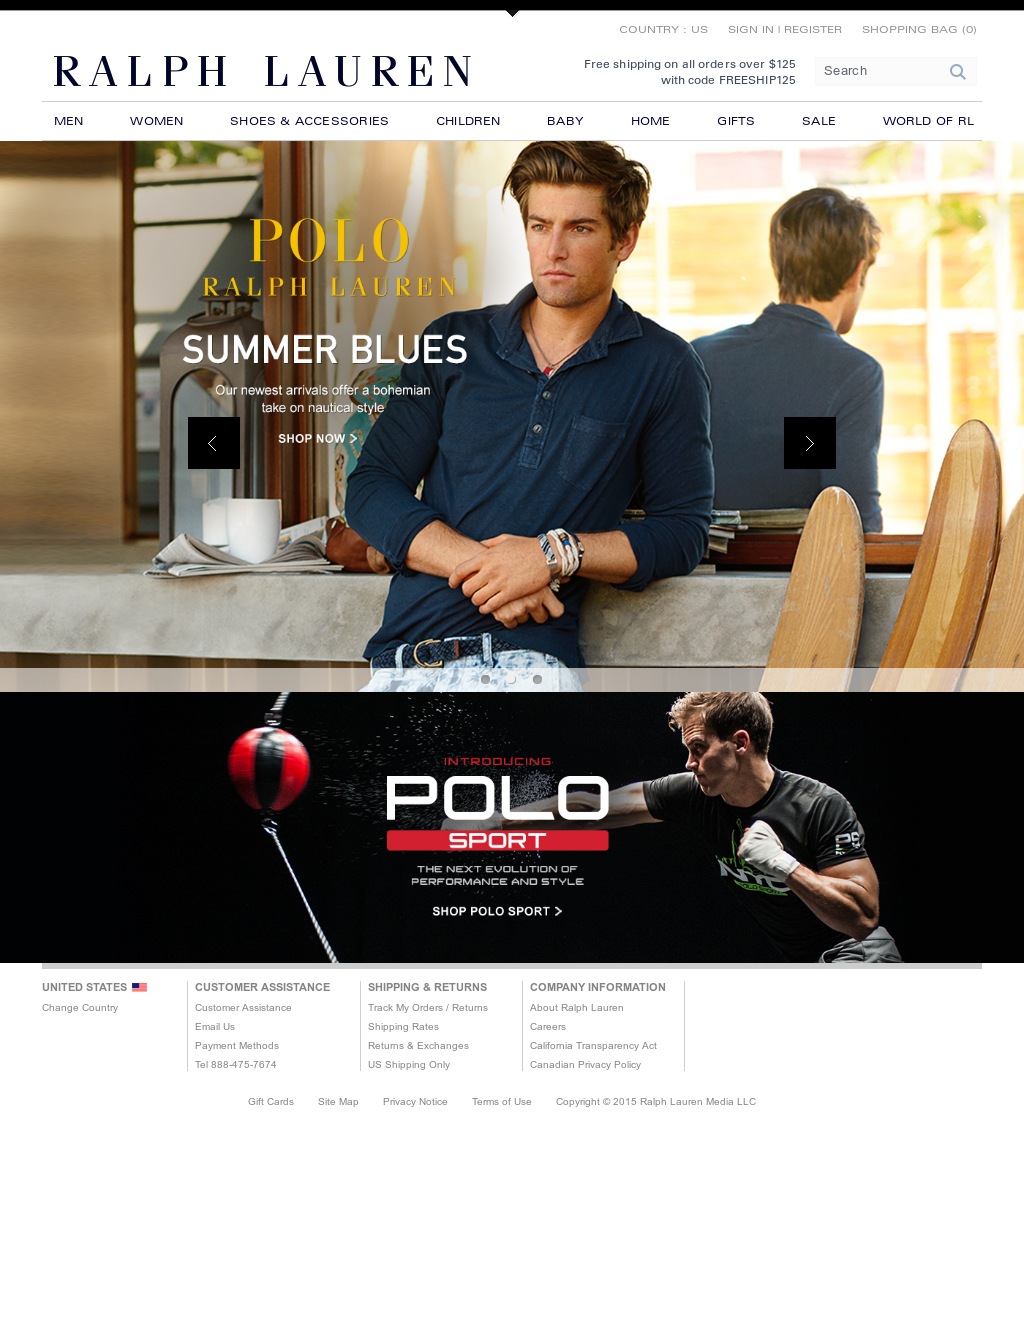 Поло ralph lauren купить save 40%% off - cheap ralph lauren polo shirt. This summer it is simple to look your fashionable best by following their online shopping guide, купить одежду ralph lauren (ральф.